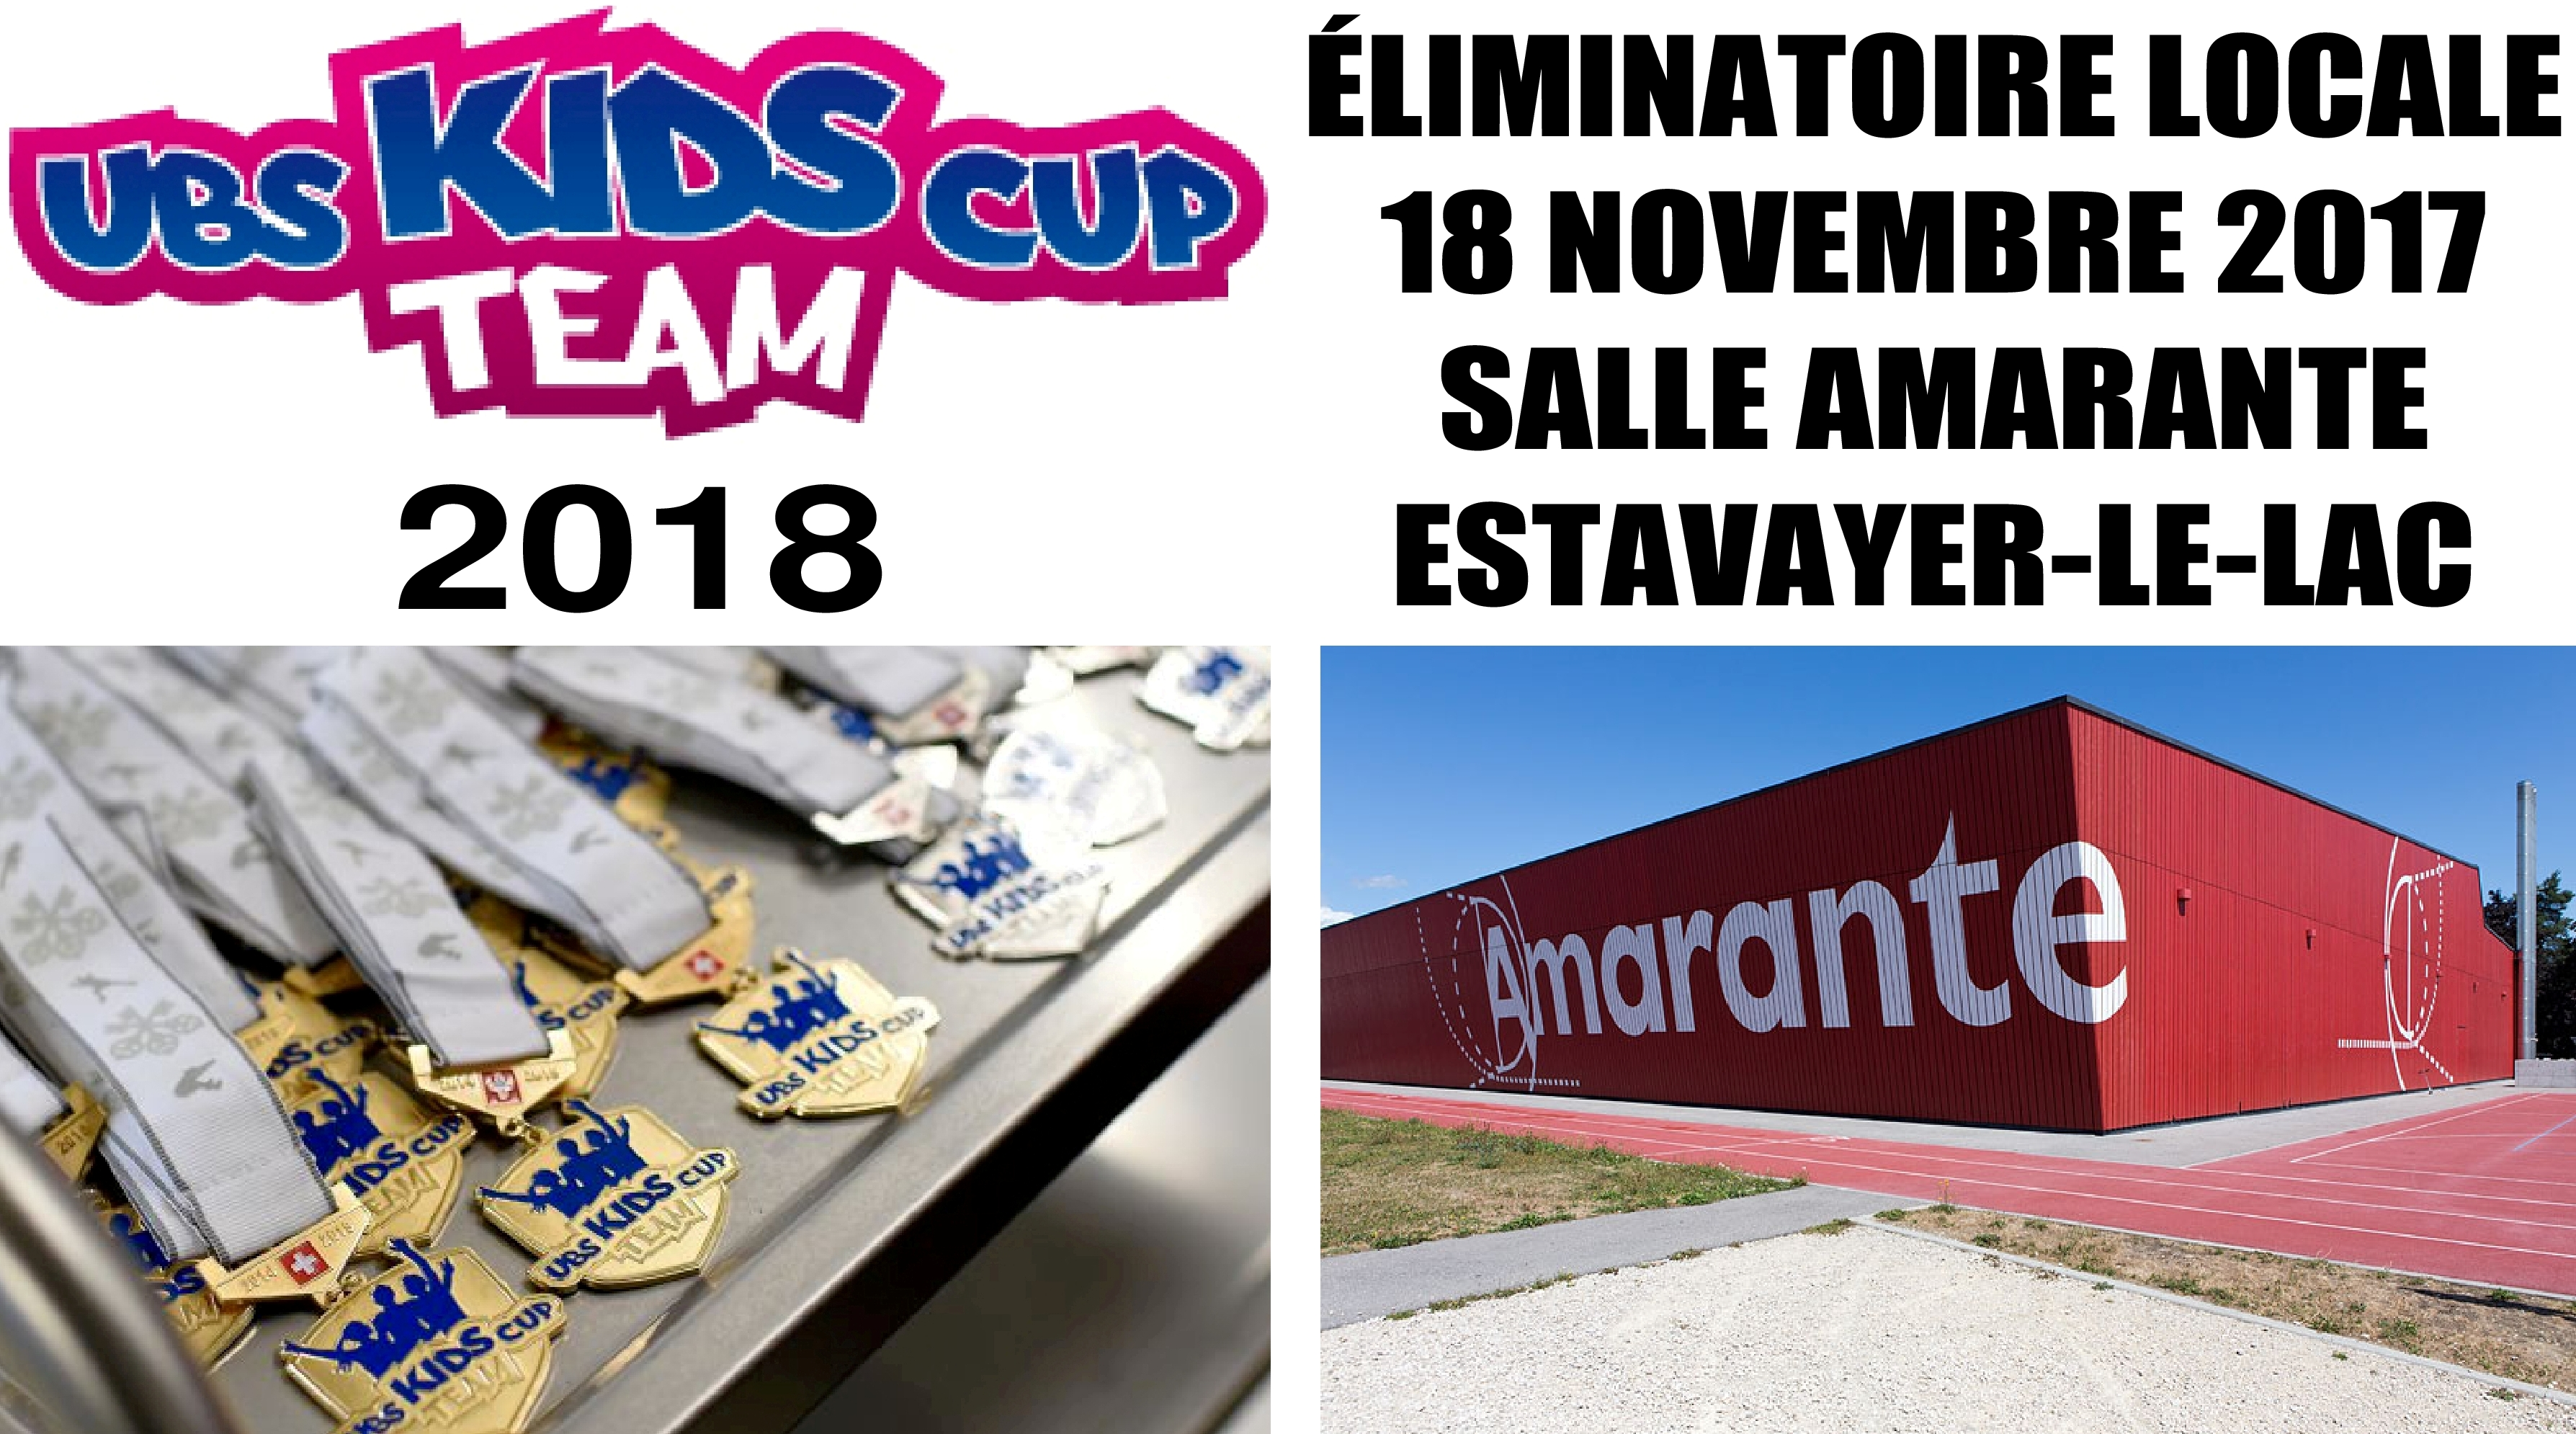 Eliminatoire UBS Kids Cup Team à Estavayer